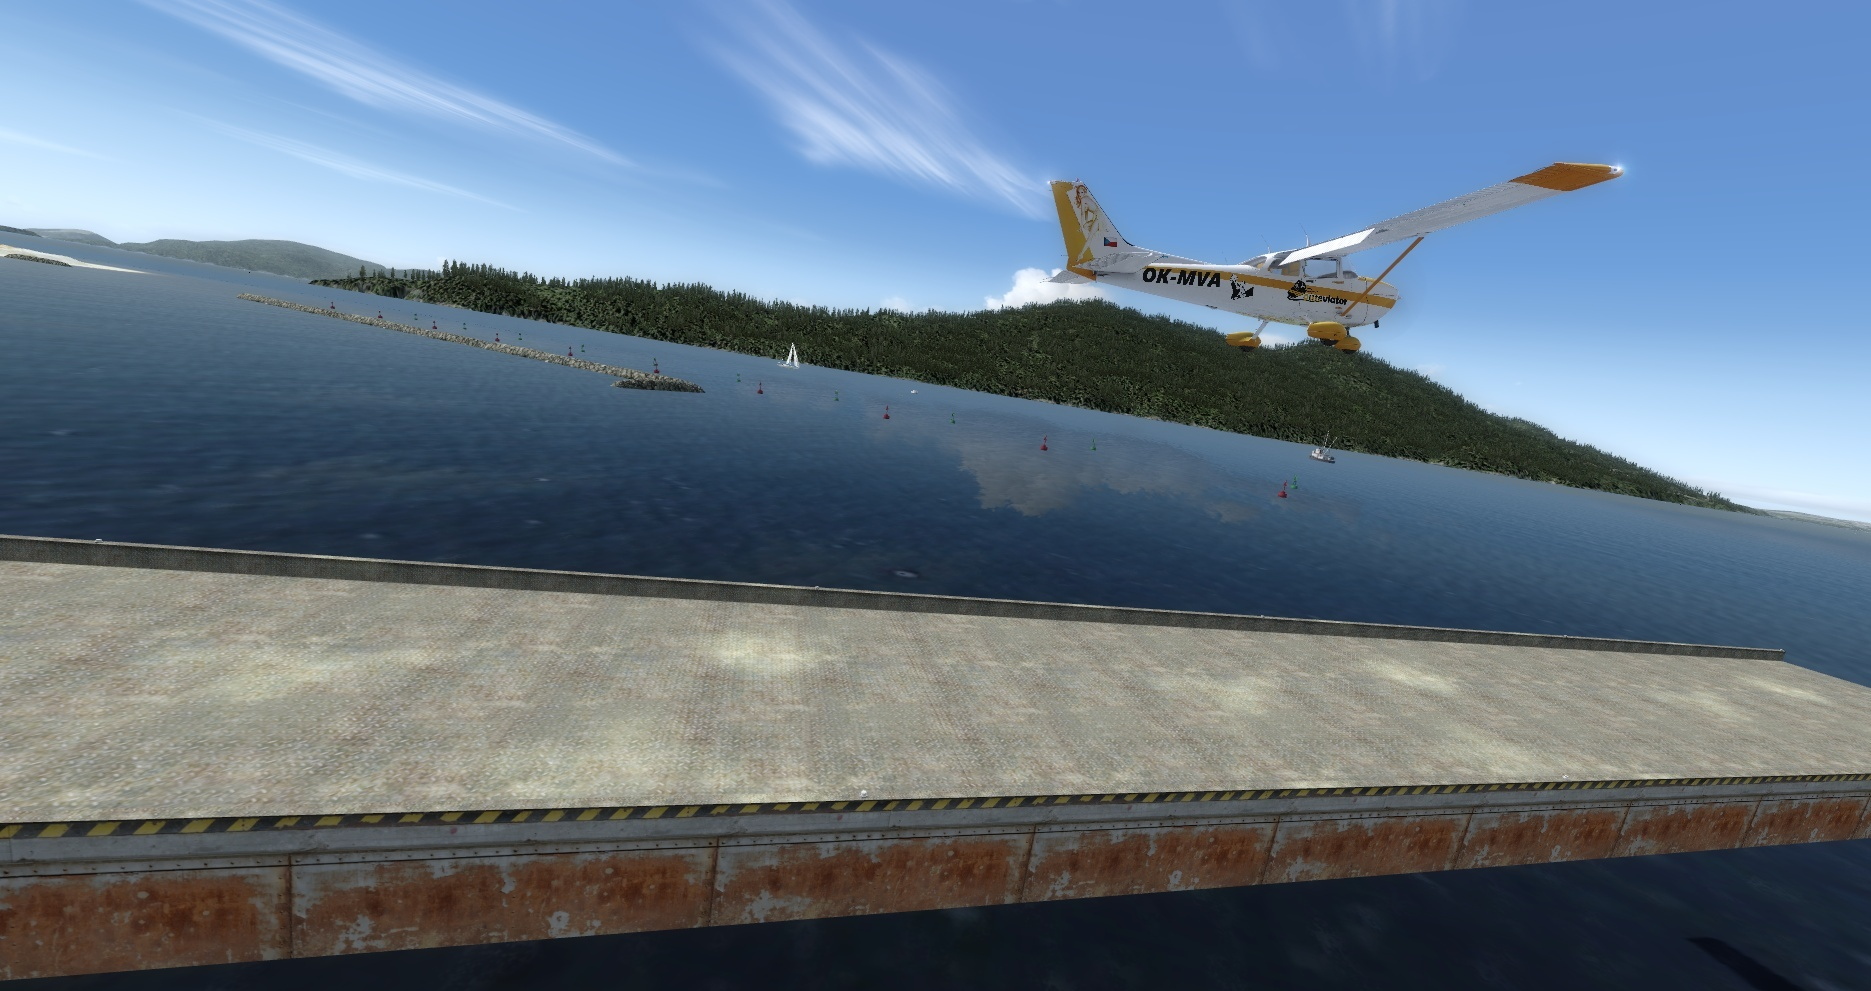 Mouseviator Private Island - takeoff from raised runway platform.